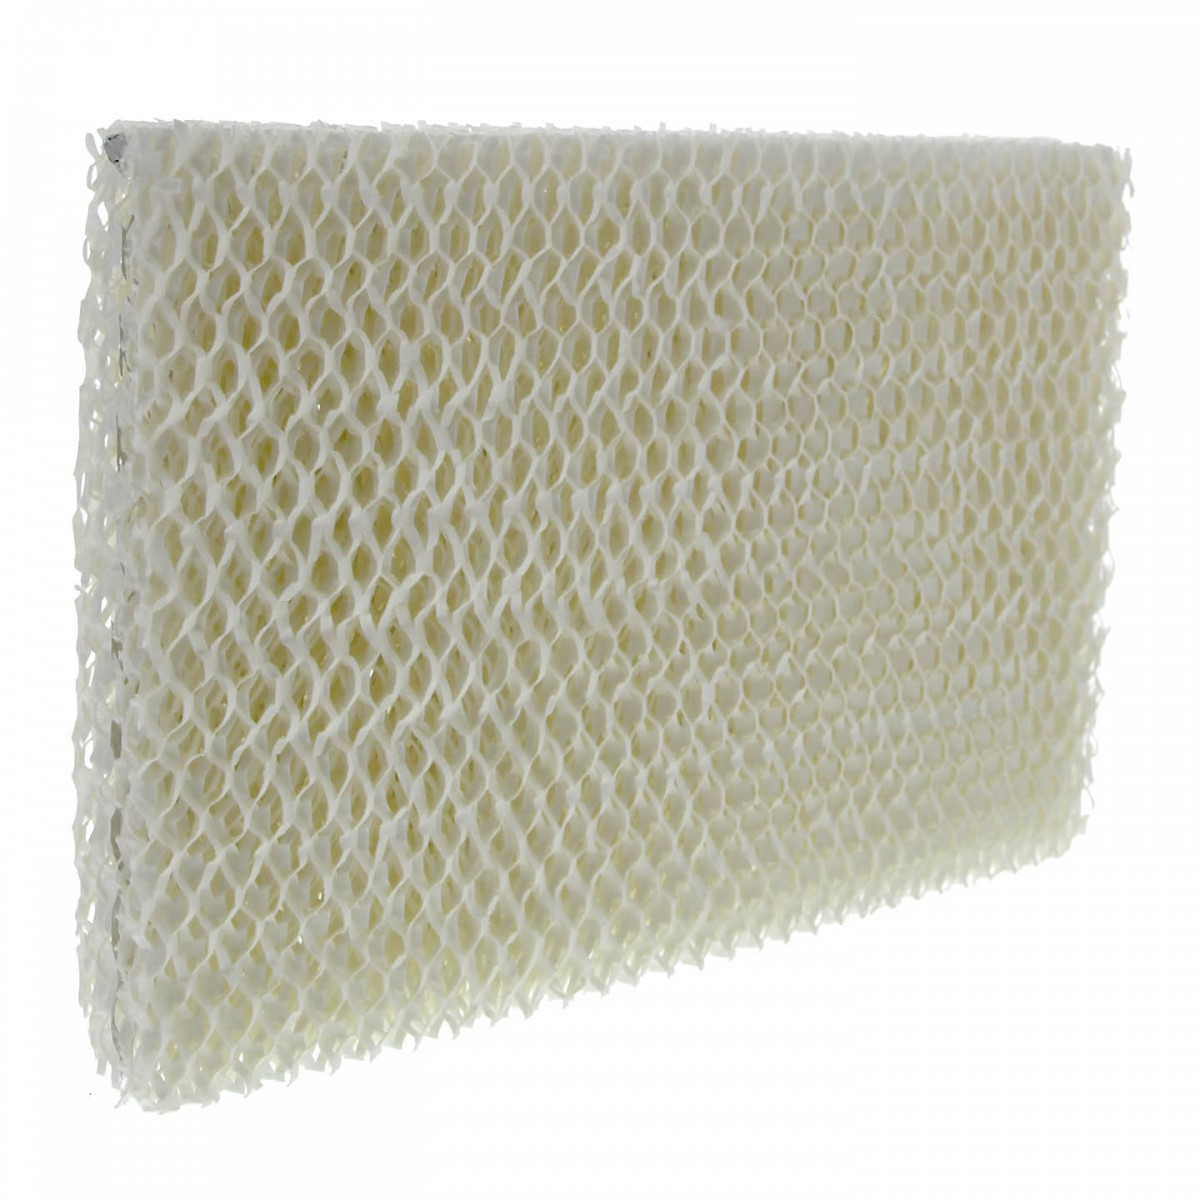 Thf8 Lasko Comparable Humidifier Wick Filter By Tier1